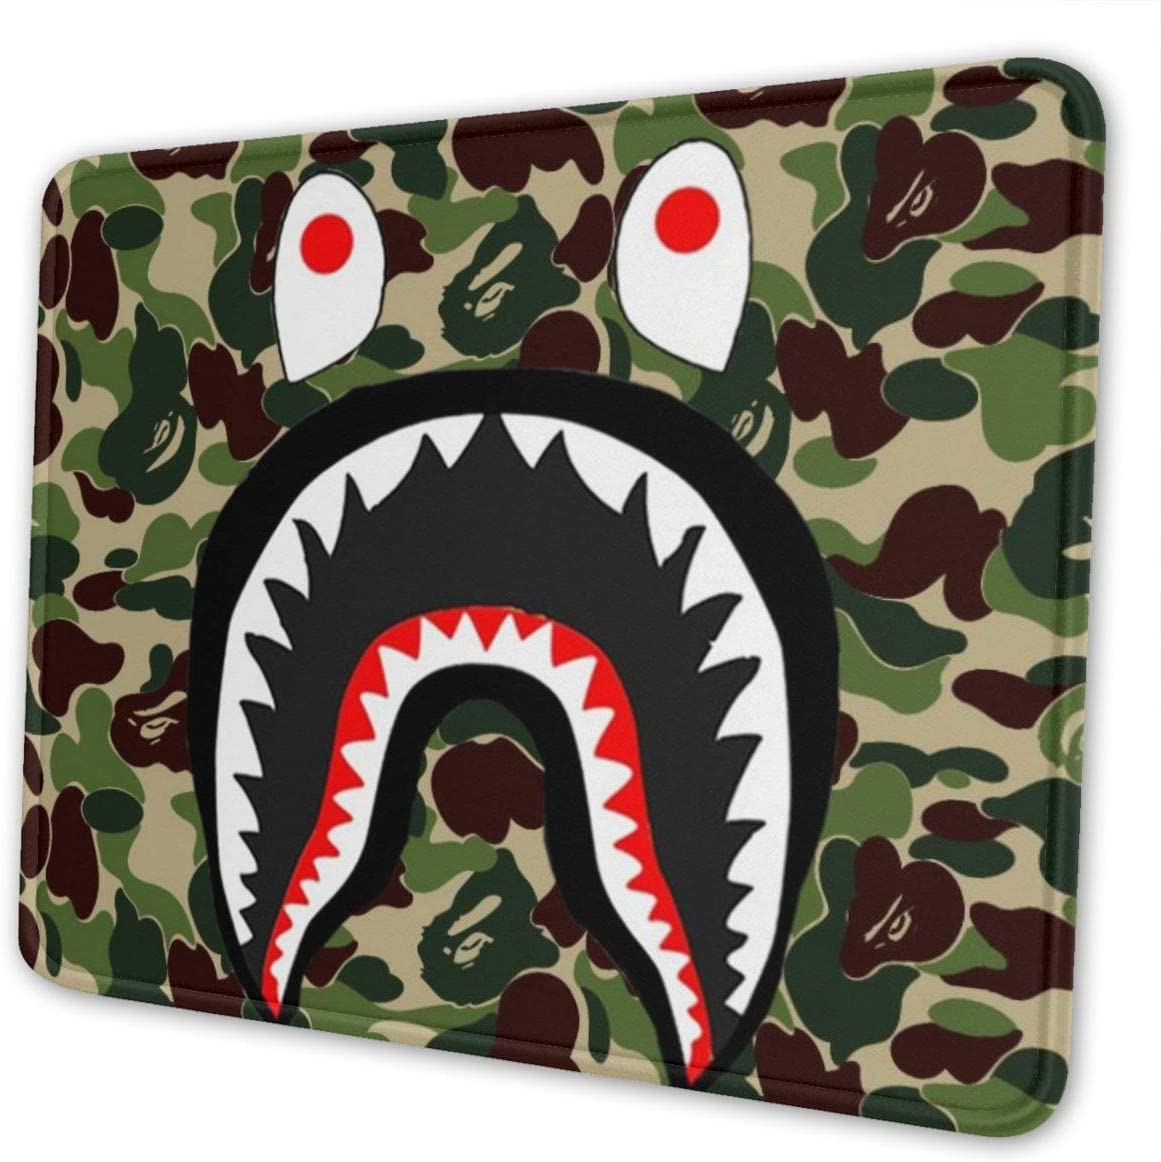 Fashion Army Green Shark Mouse Pad, Camo Design Customized Mousepad with Stitched Edge Non-Slip Rubber Large Gaming Mouse Pad for Laptop, Computer & Office, 11.8 X 9.8 X 0.12 Inch